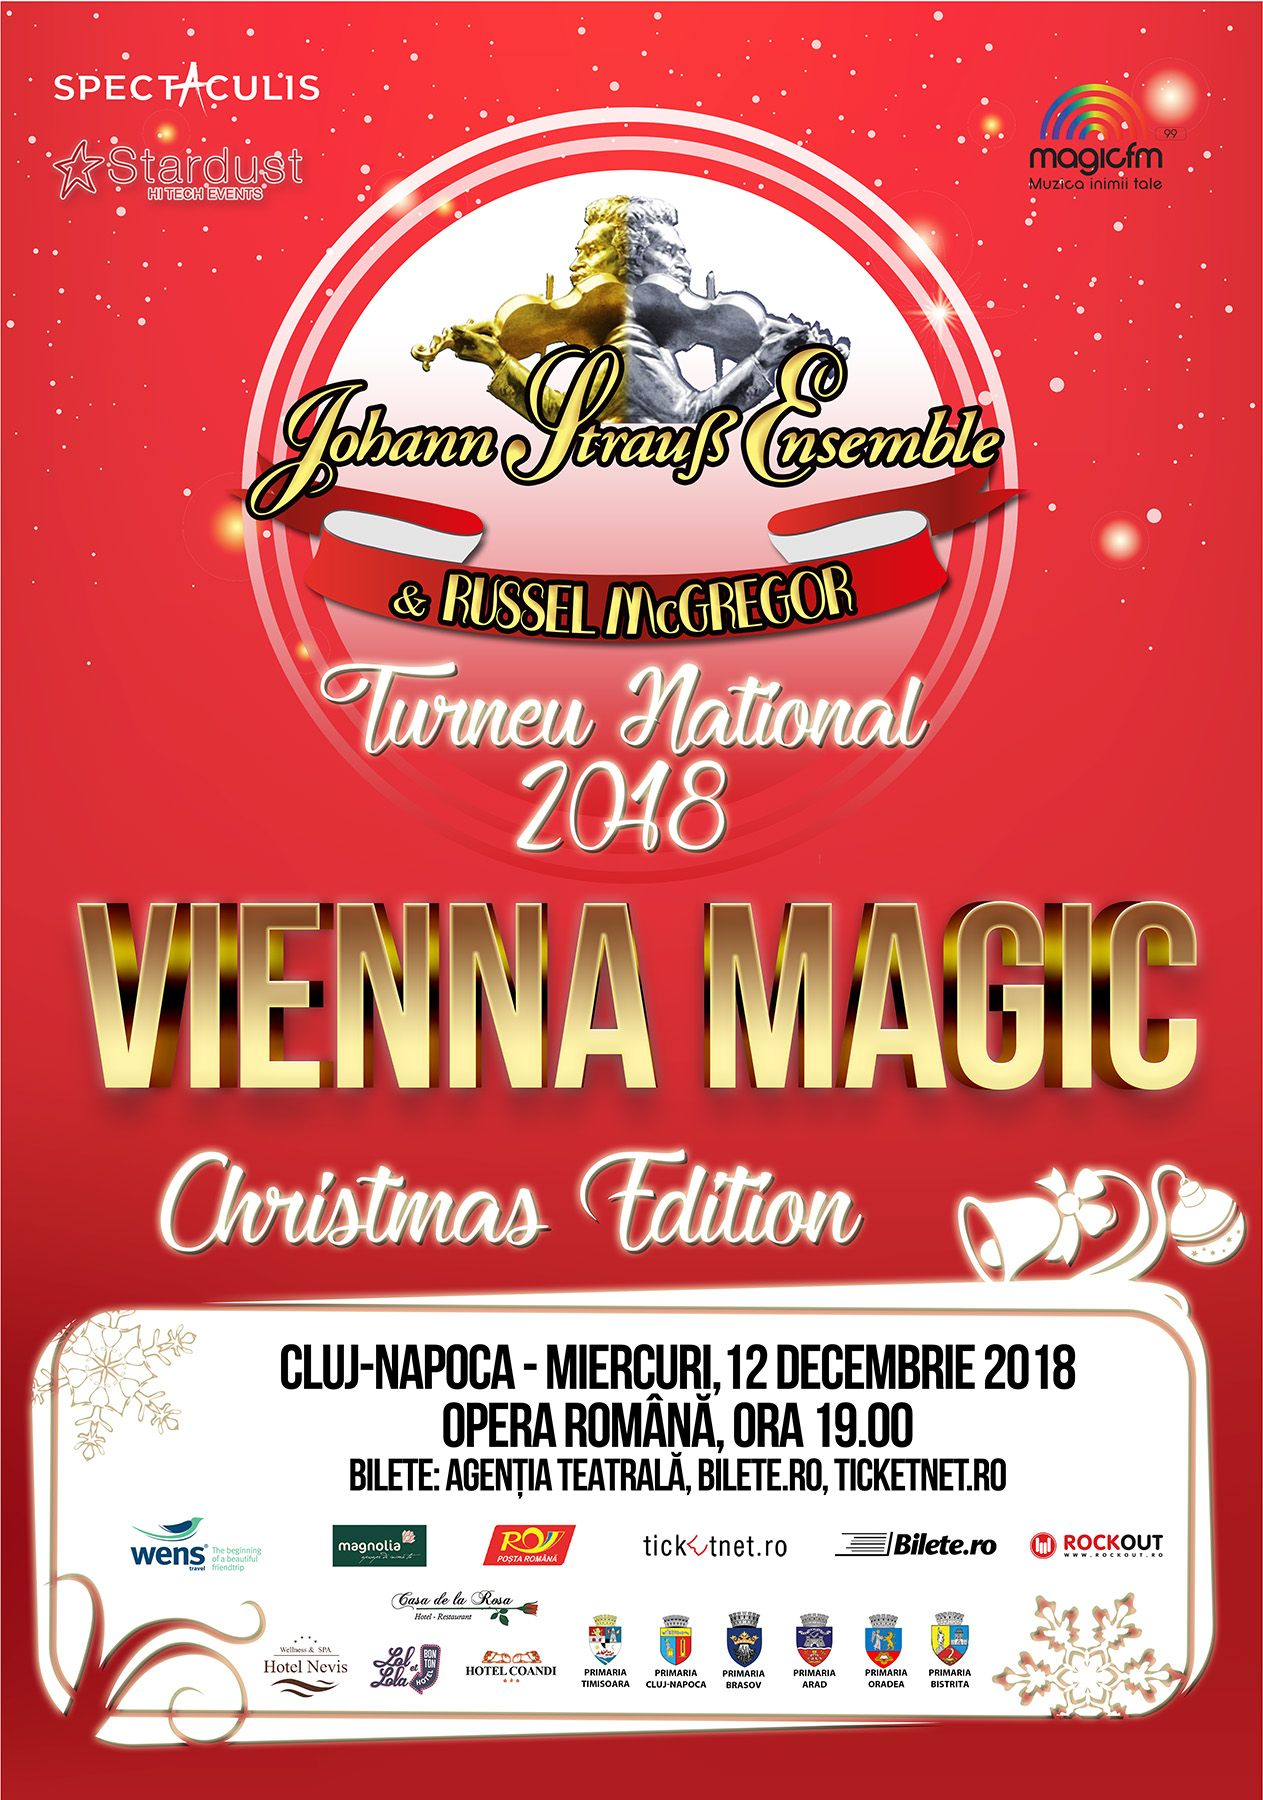 Johann Strauss Ensemble - RÂMNICU VÂLCEA - Vienna Magic